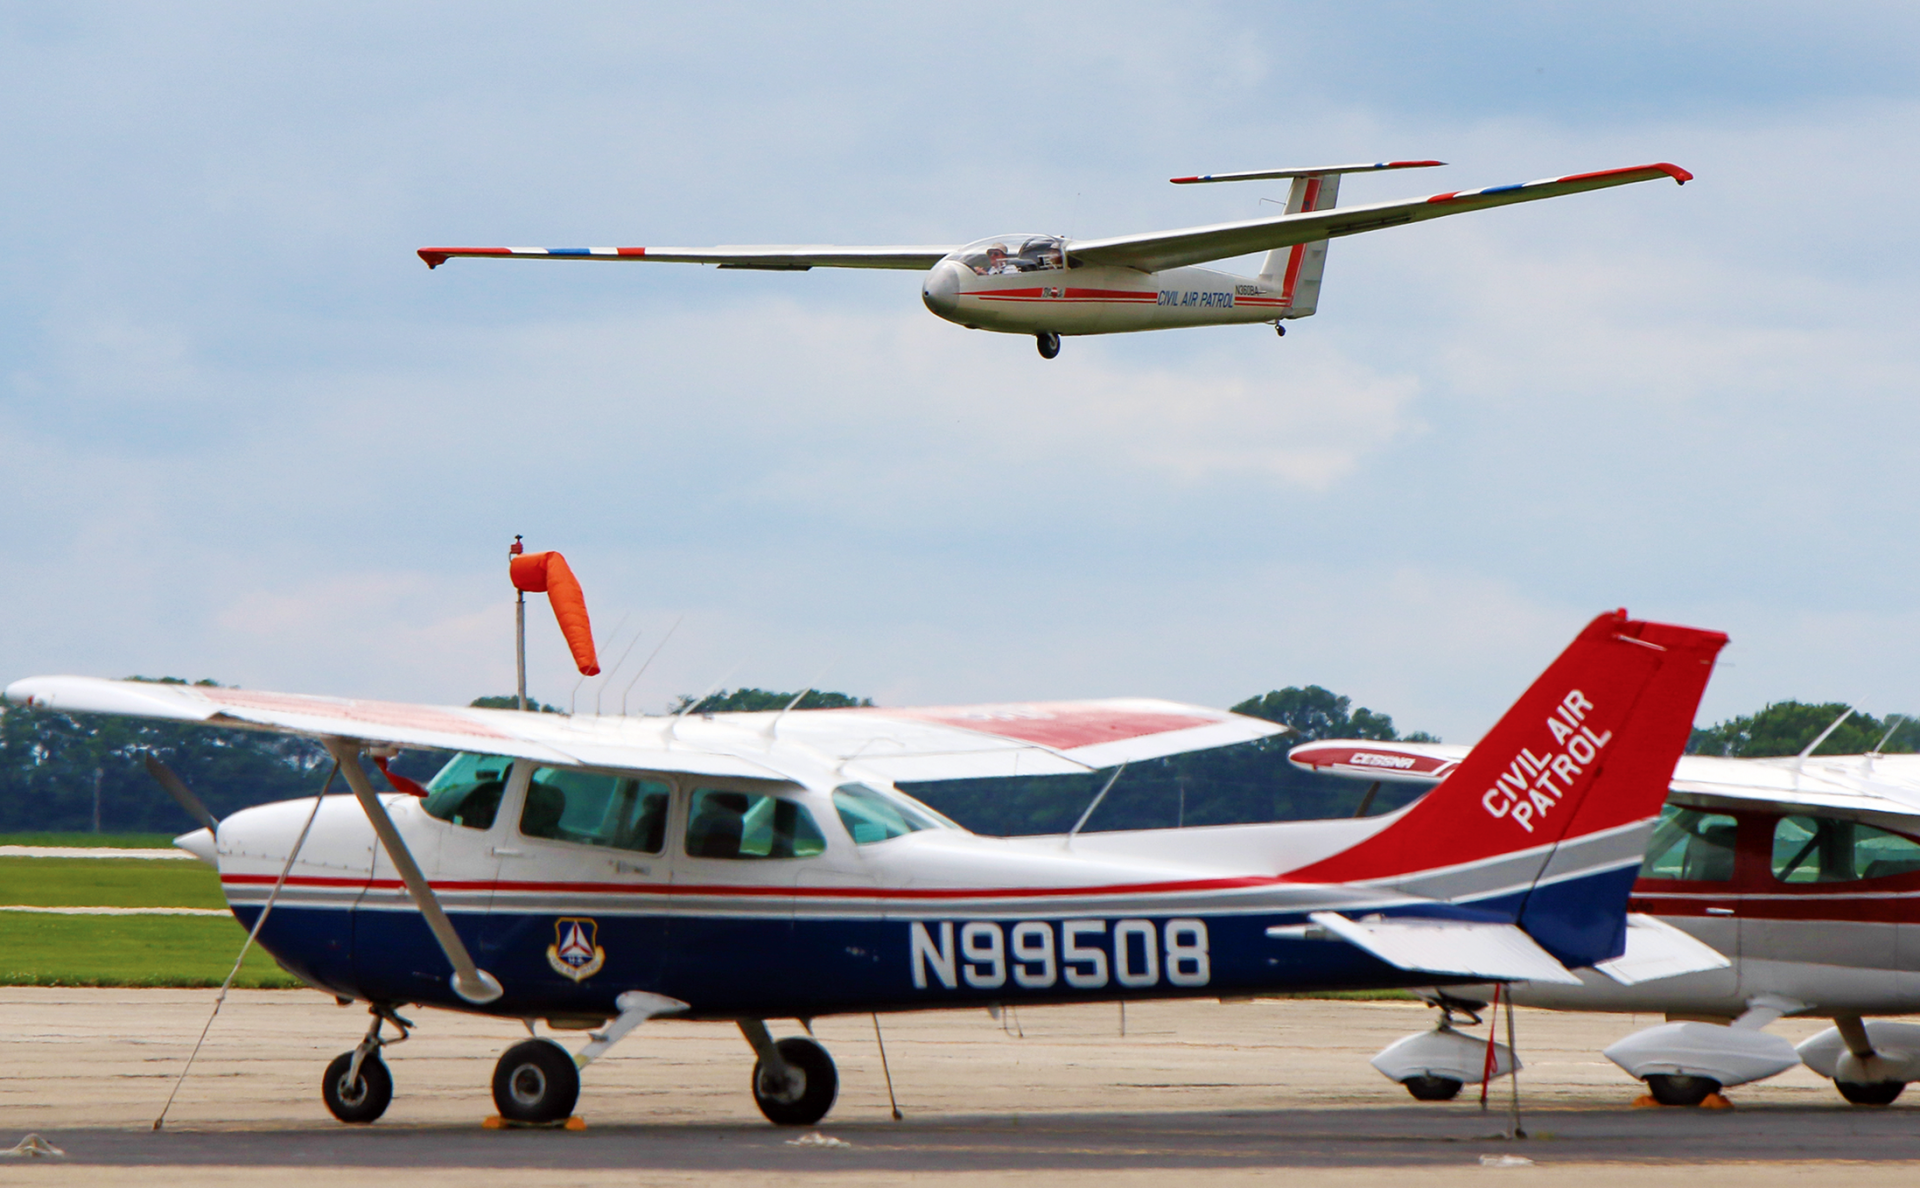 I help teenagers learn about aerospace careers and how to fly in Civil Air Patrol